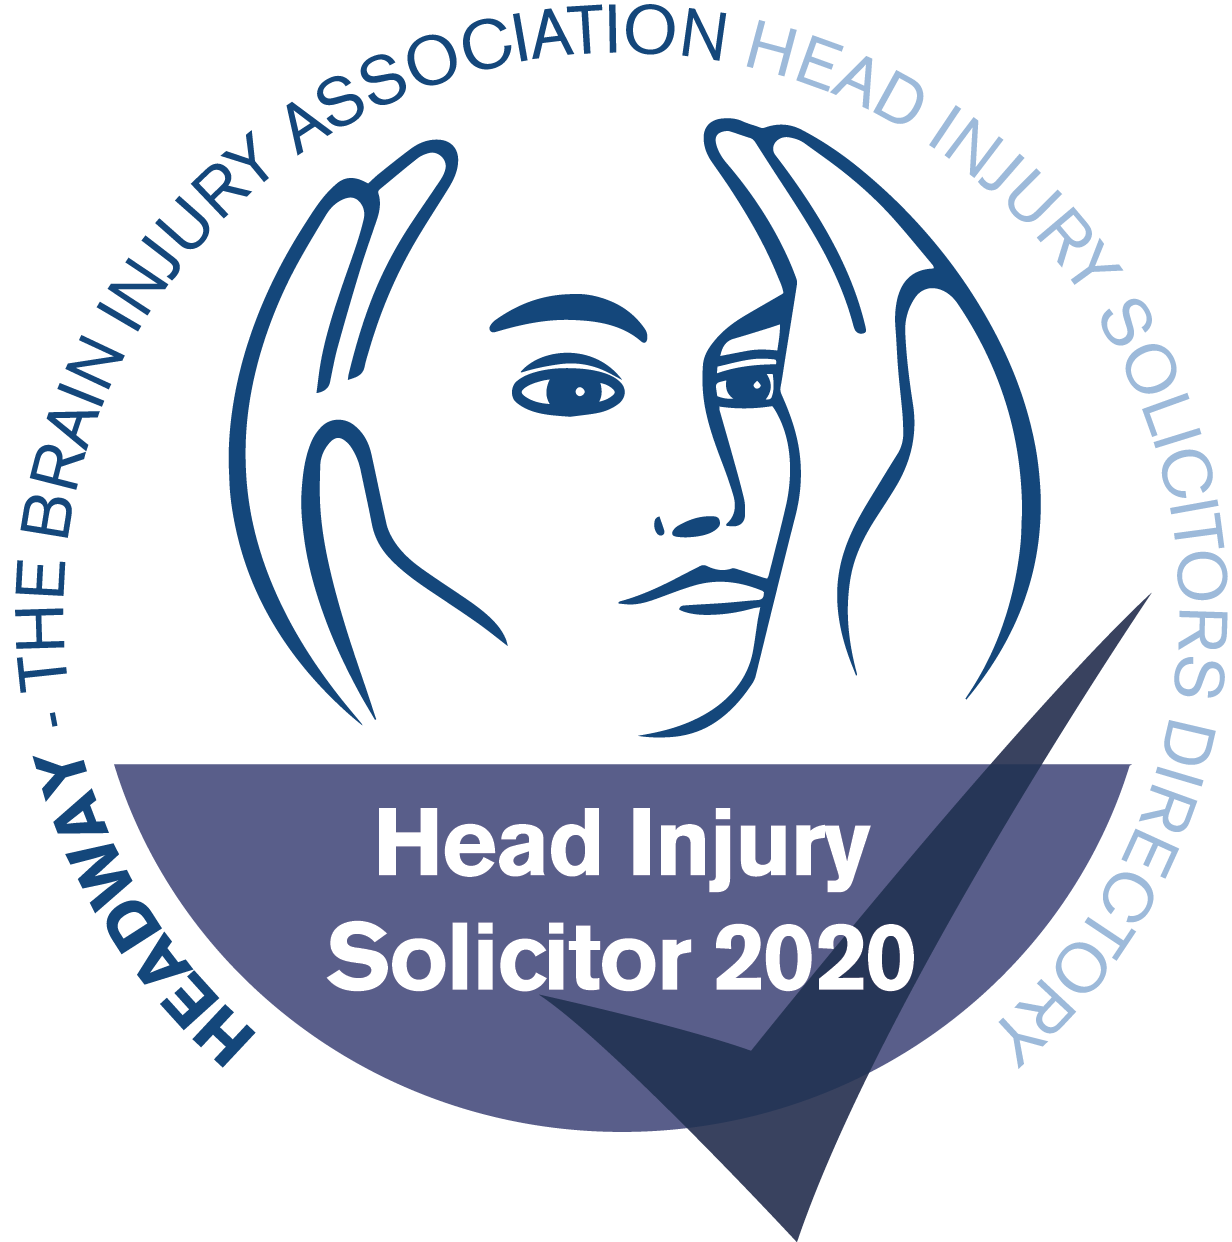 Head Injury Solicitor 2020